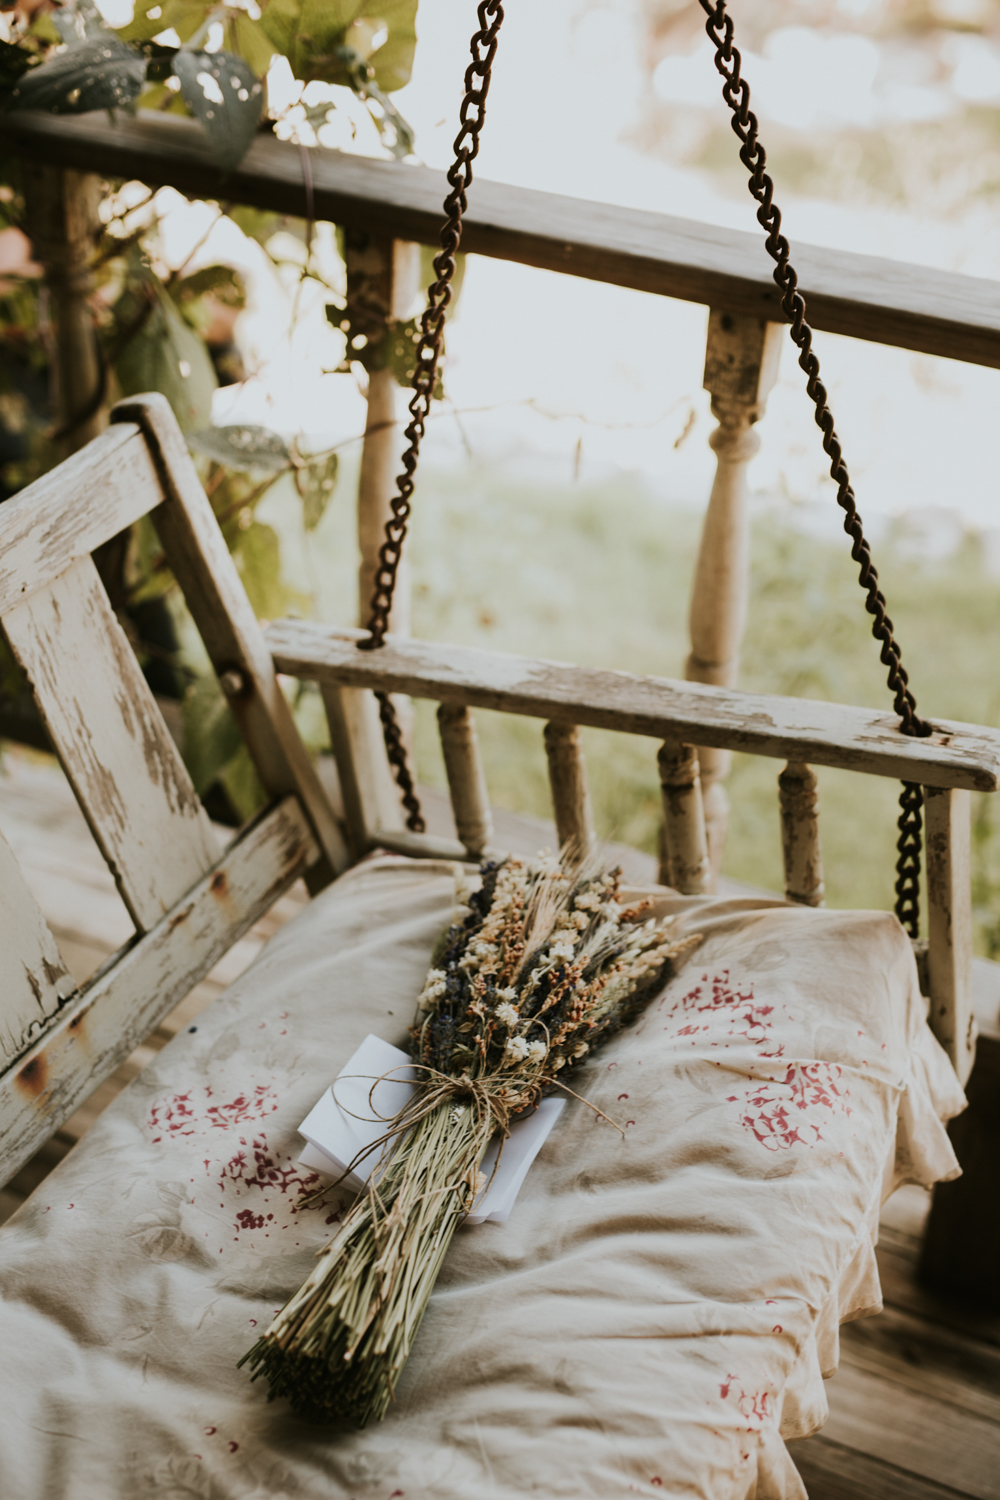 Rustic Ranch Wedding Photography - Diana Ascarrunz Photography - Austin Wedding Photographer-10.jpg